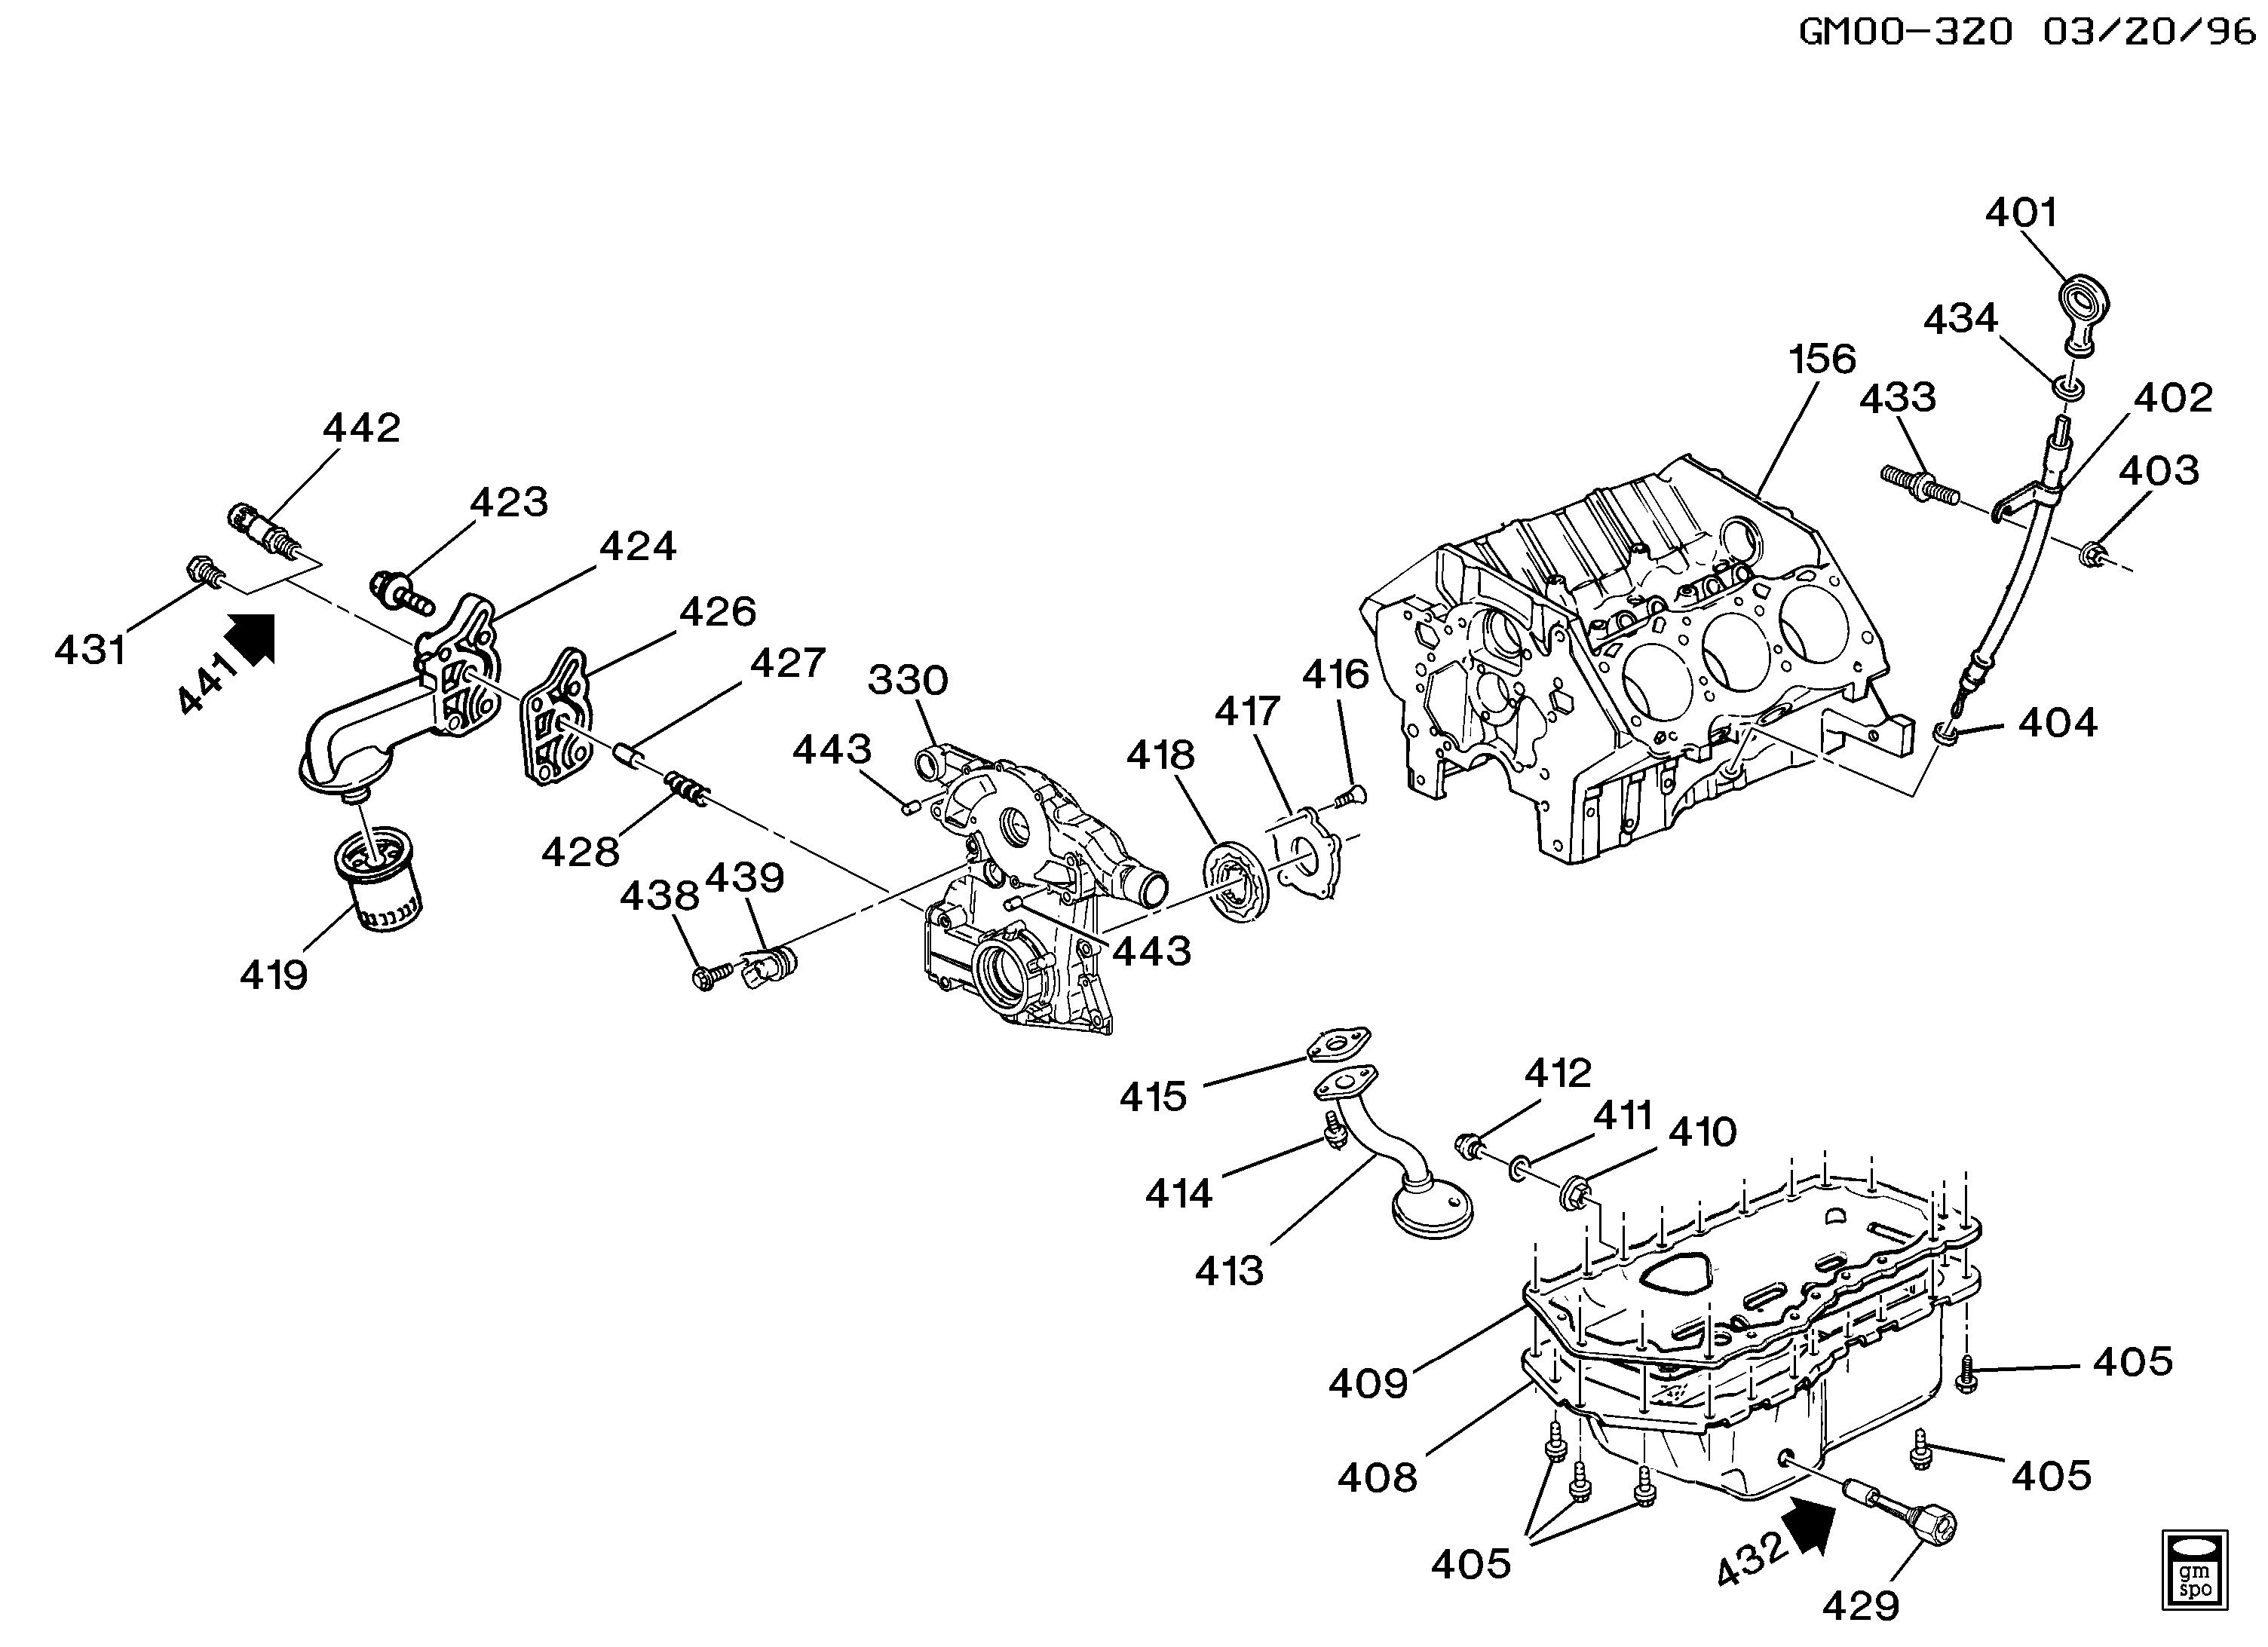 1997-1998 W ENGINE ASM-3.8L V6 PART 4 OIL PUMP, PAN AND RELATED PARTS (L67/3.8-1)